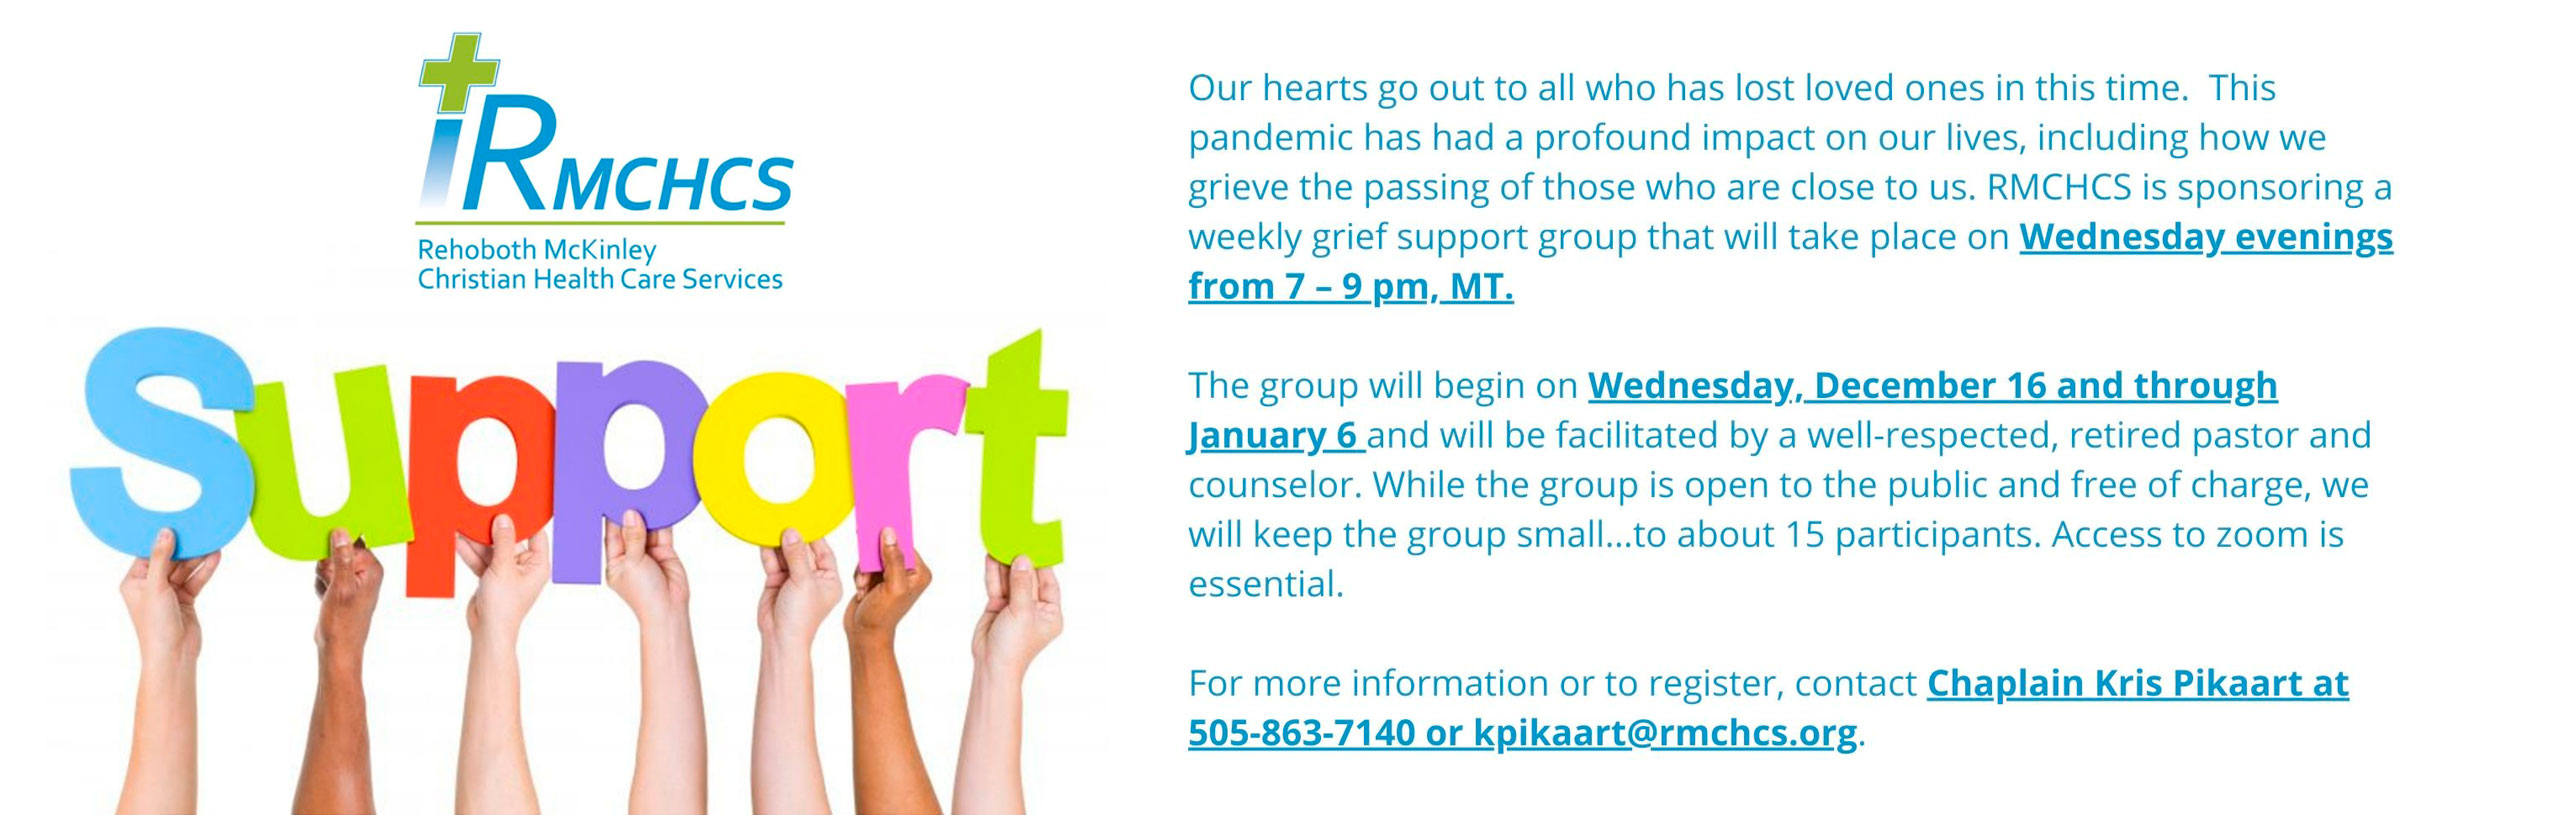 RMCHCS SUPPORT. RMCHCS is sponsoring a weekly grief support group that will take place on Wednesday evenings from 7-9 pm MT.